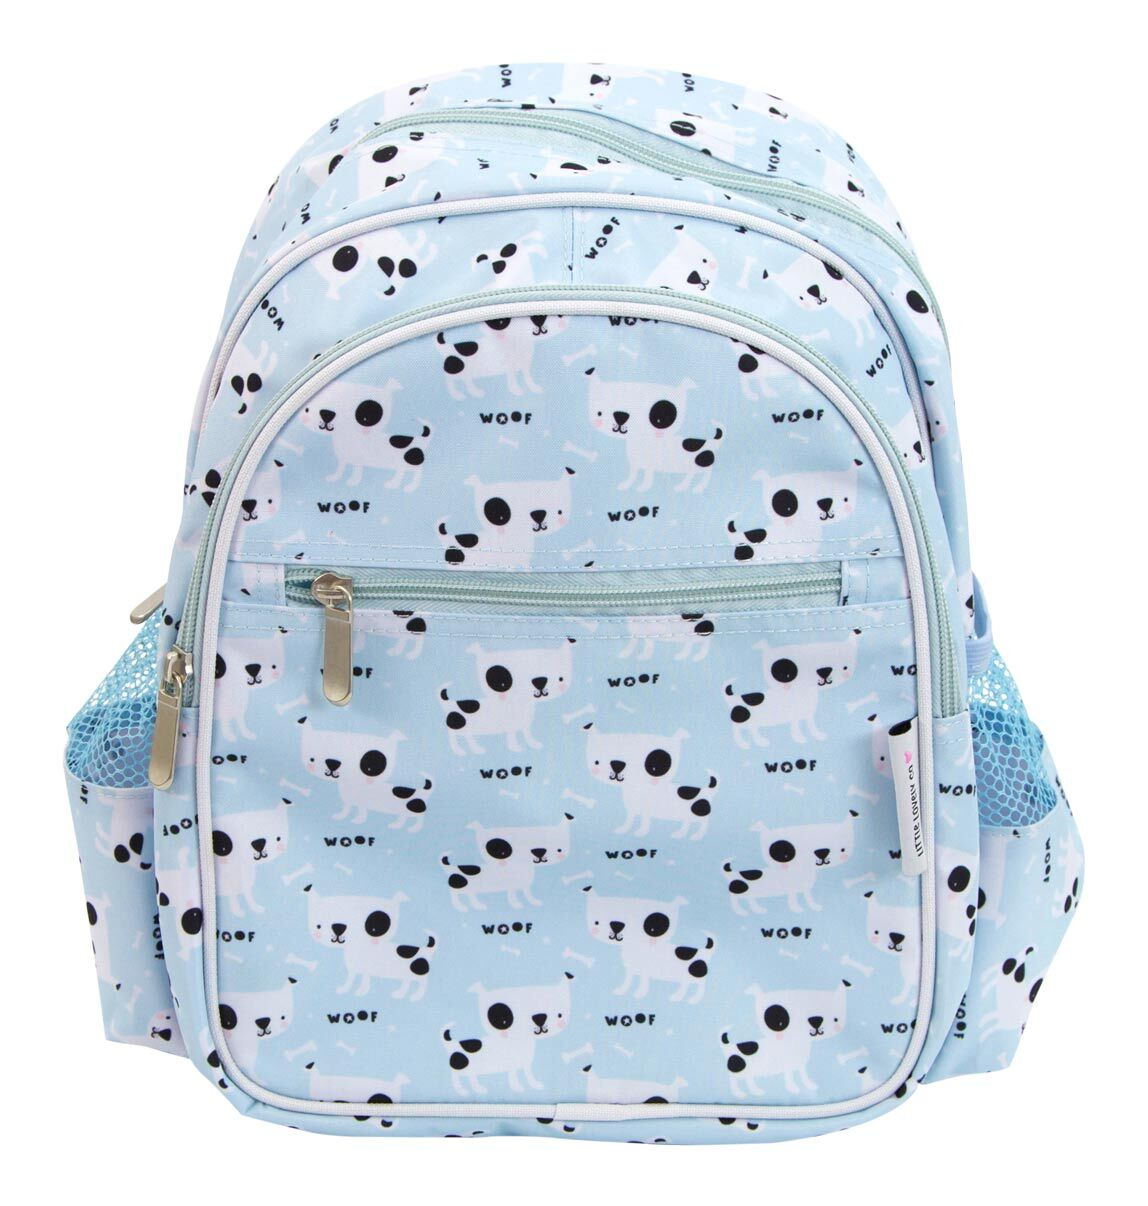 58f2b5a81c3c Dogs Canvas Backpack – DLK